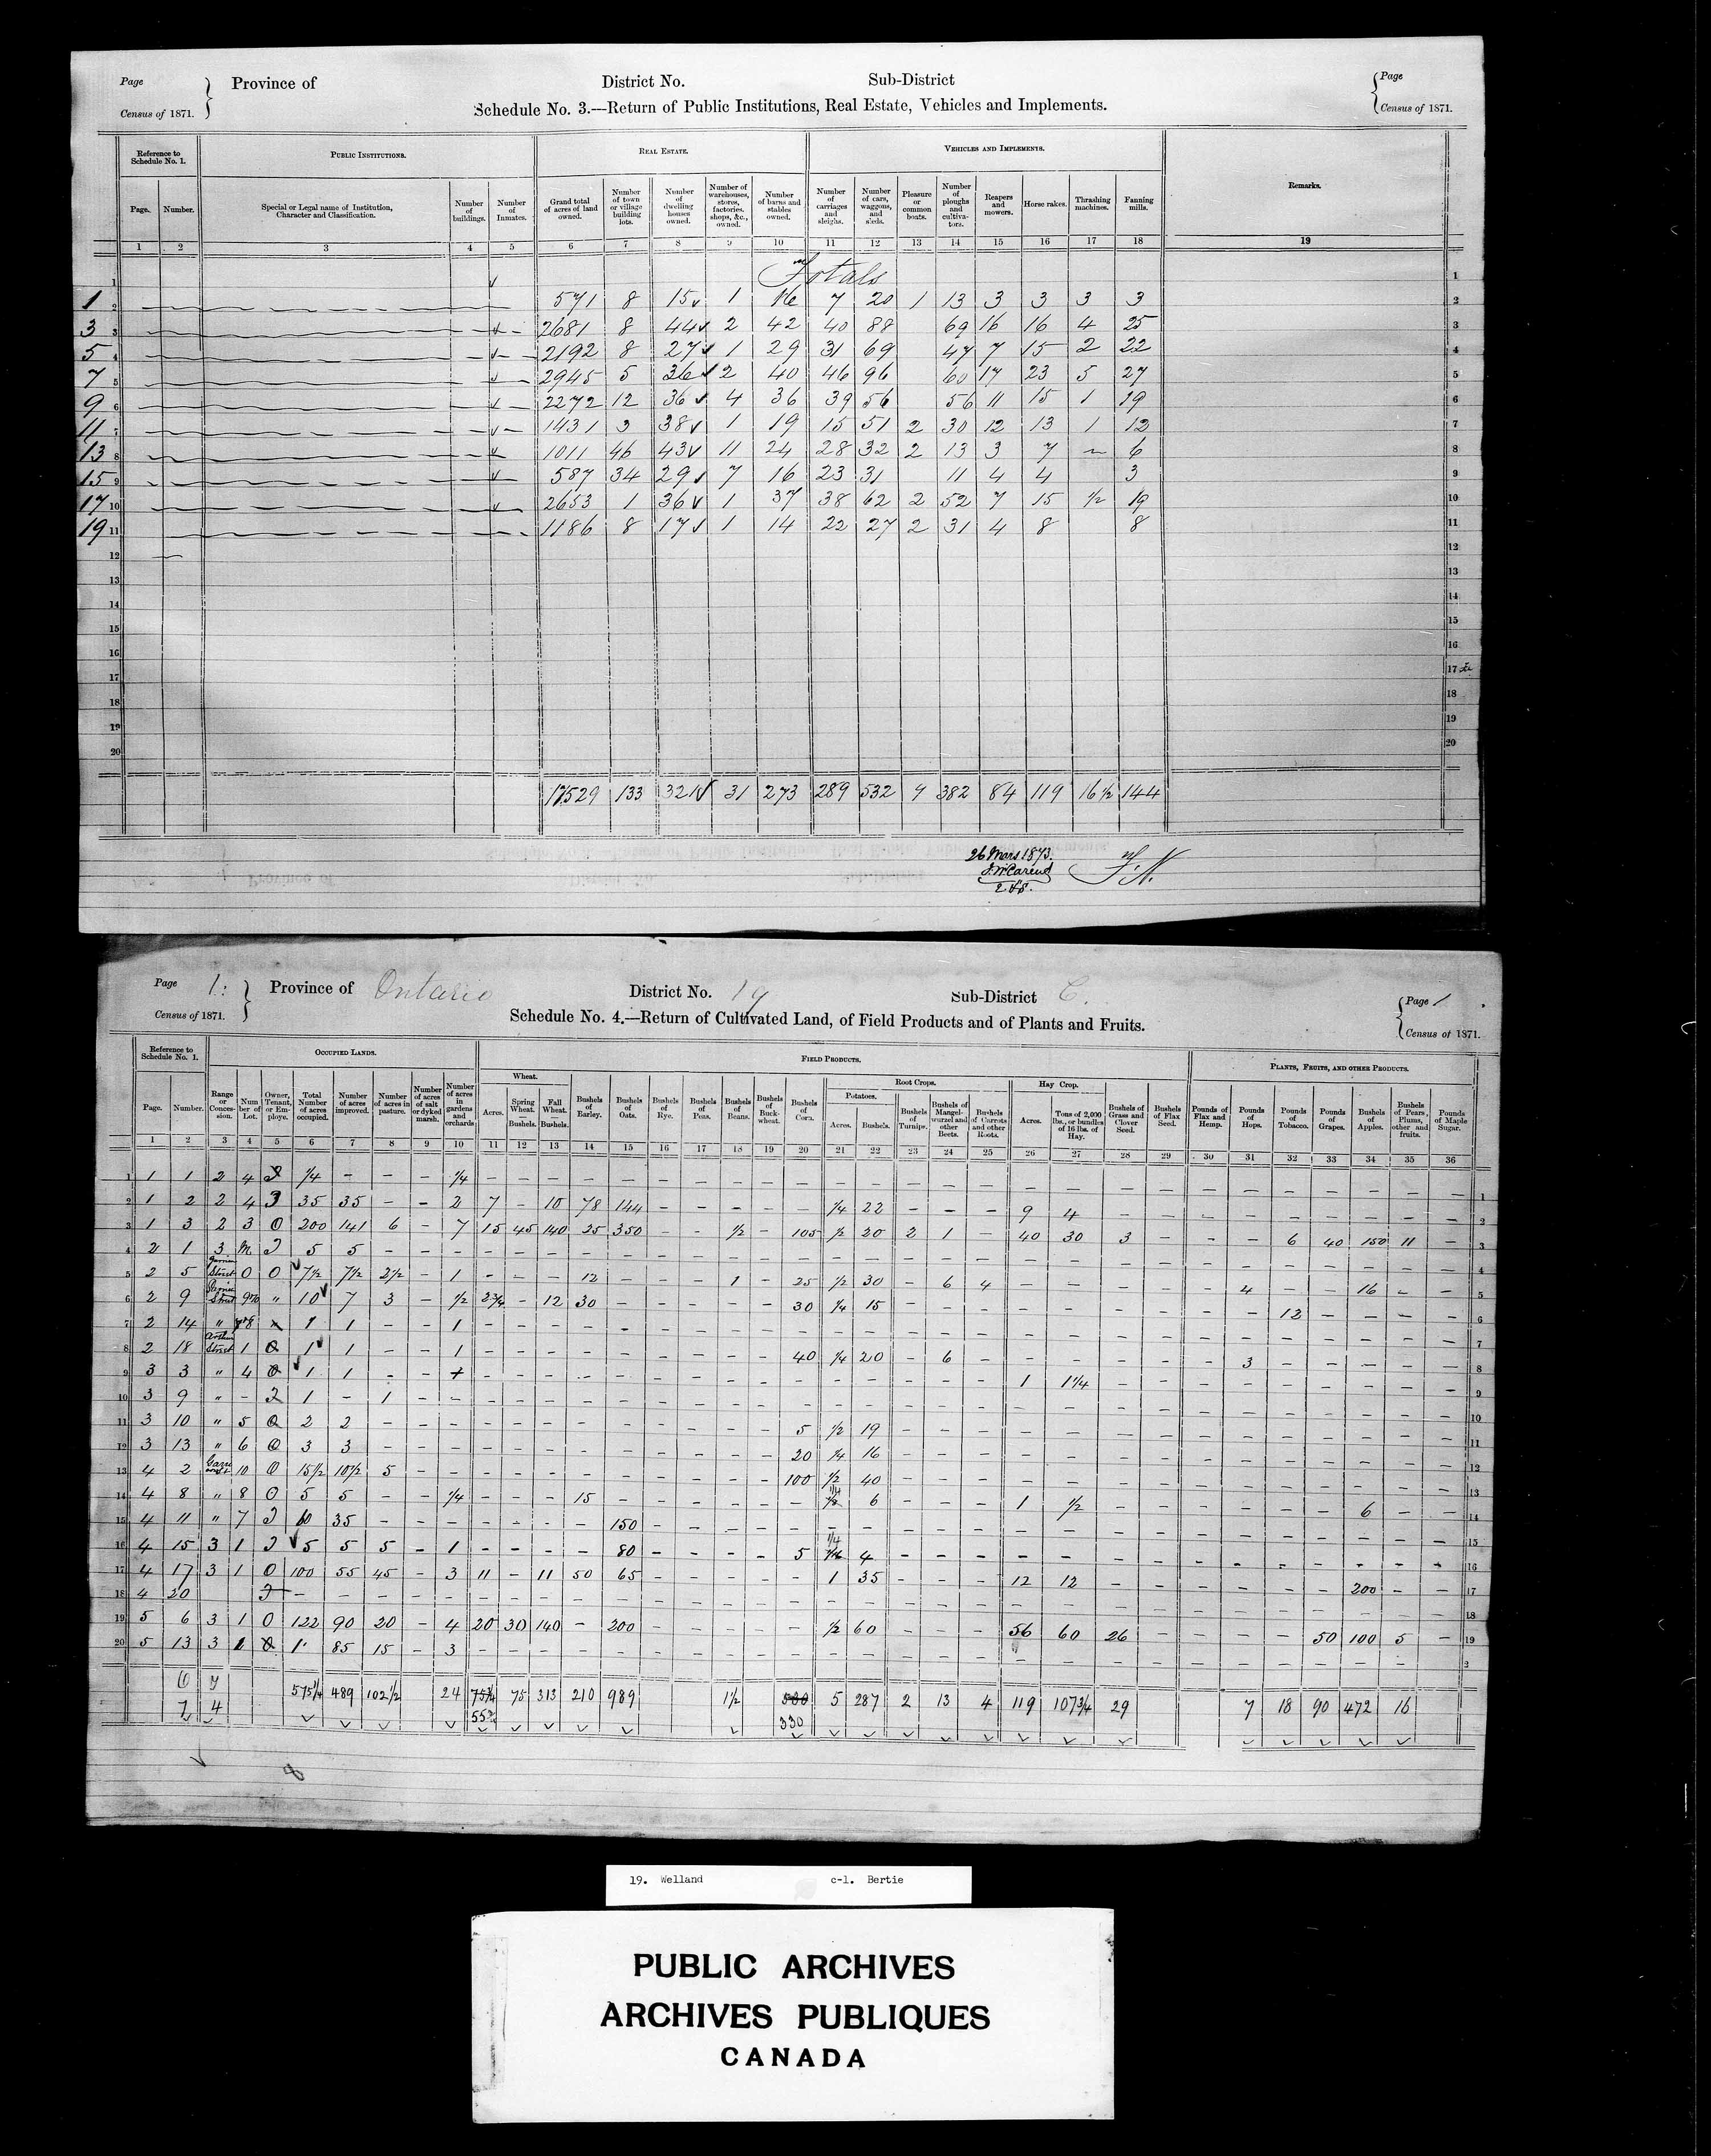 Title: Census of Canada, 1871 - Mikan Number: 142105 - Microform: c-9919